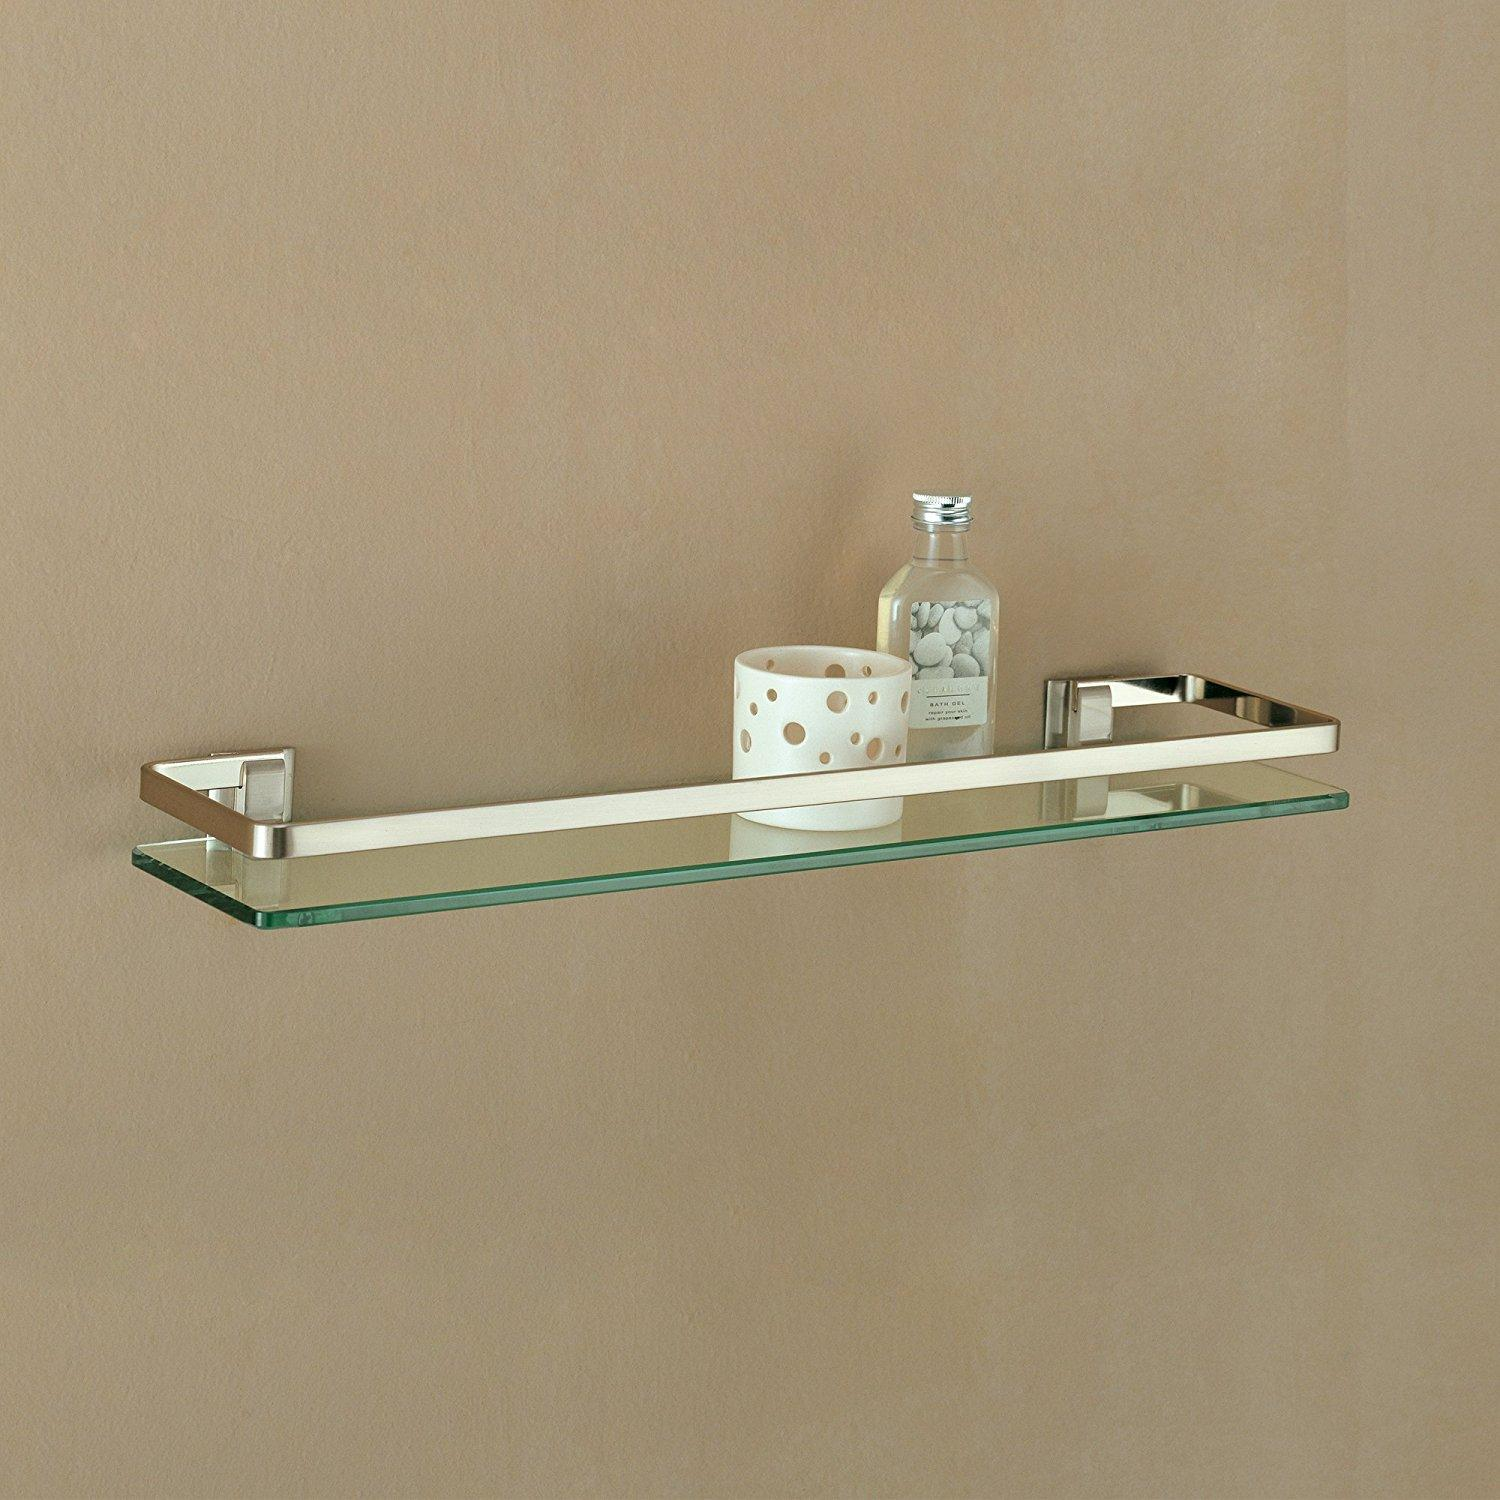 Amazon.com: Organize It All Wall Mounting Glass Shelf with Nickle ...